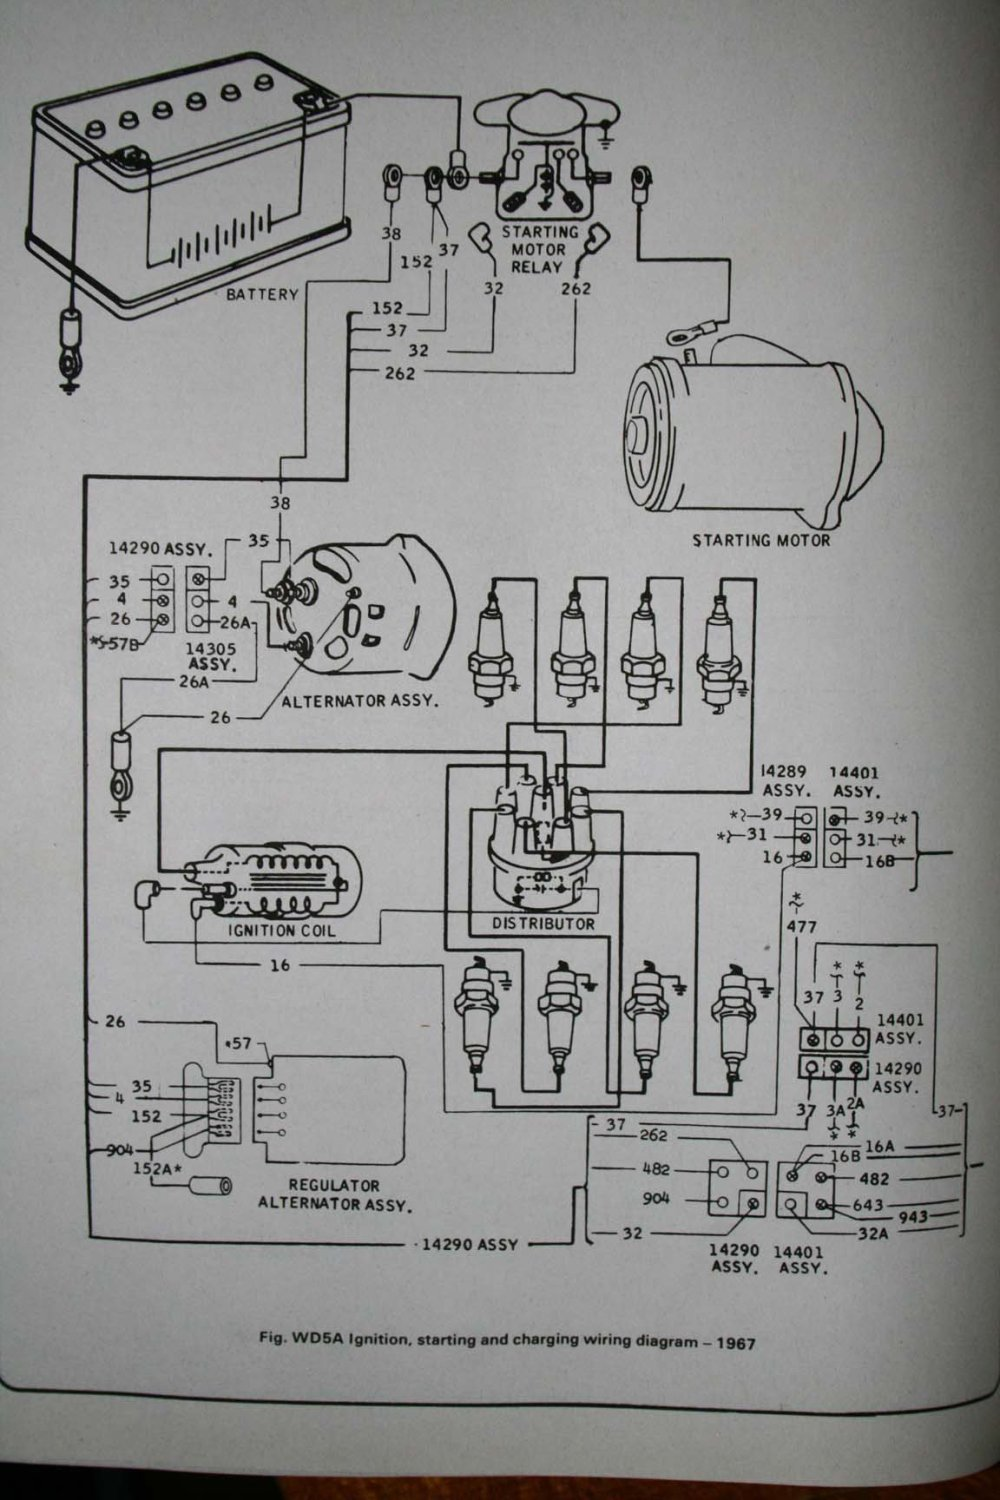 medium resolution of 1967 ford mustang voltage regulator wiring diagram wiring diagram1978 ford voltage regulator wiring diagram wiring libraryclick